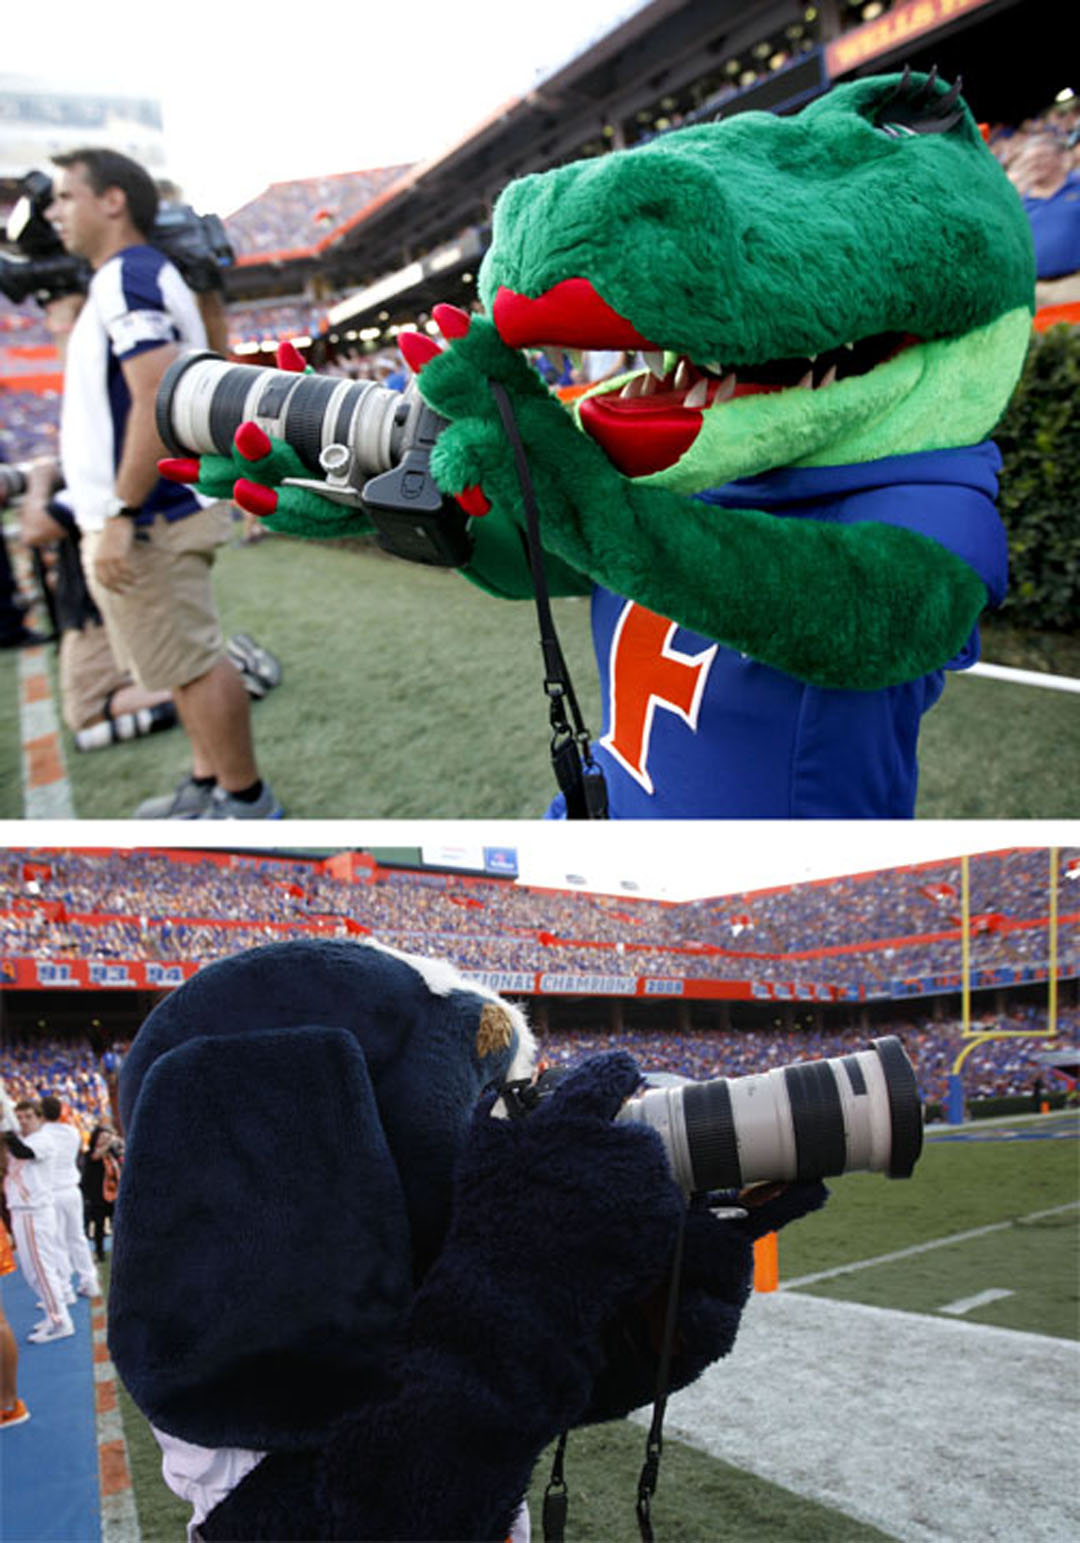 Scenes from the sidelines during the game between the Florida Gators and Tennessee Volunteers on Saturday, Sept. 26, 2015 in Gainesville, Fla. Florida defeated Tennessee 28-27. Matt Stamey/Staff photographer